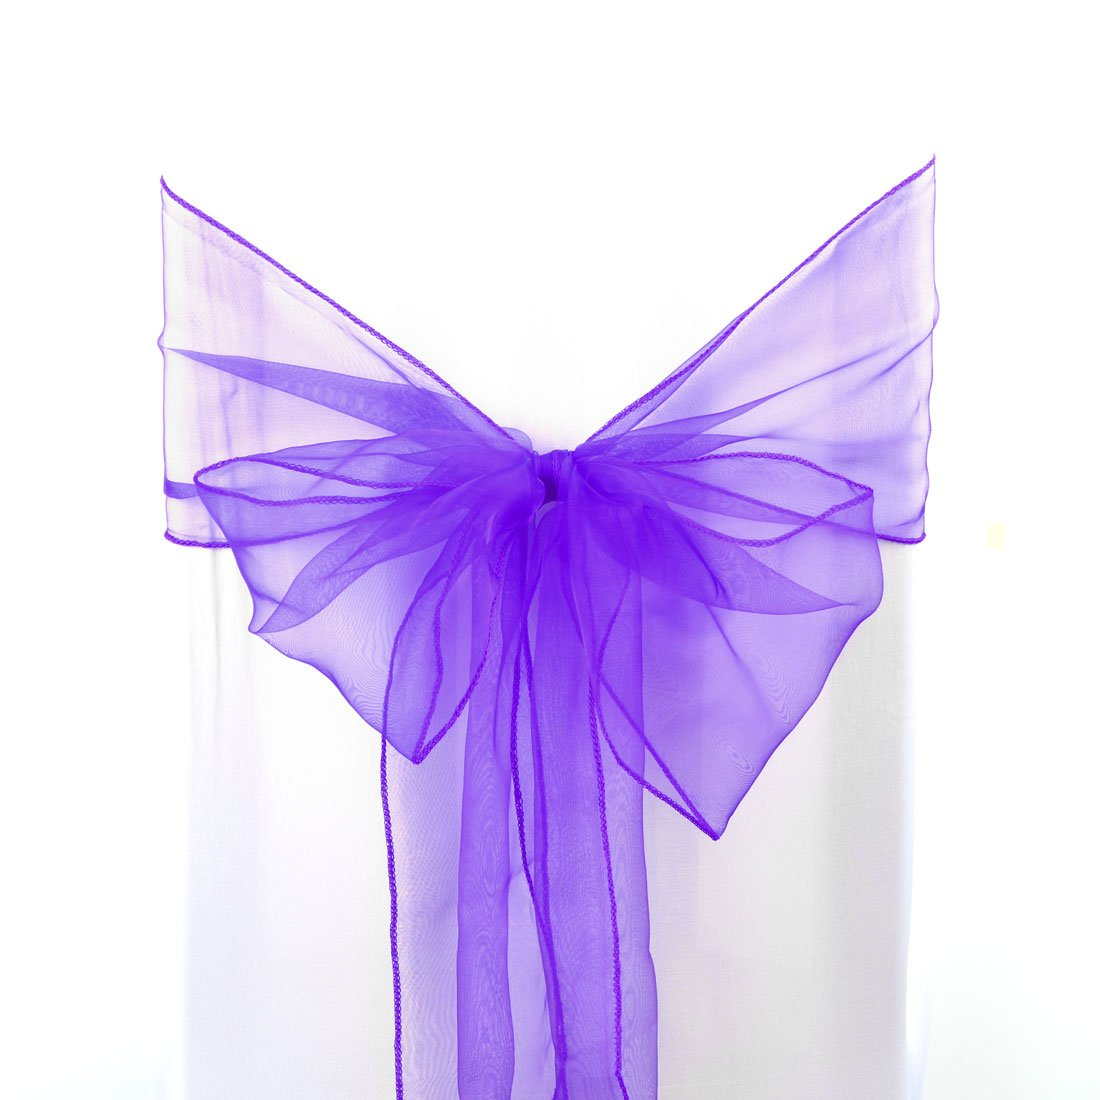 uxcell 50pcs Organza Sashes Chair Cover Bows Sash Fuller Bow for Wedding Party Birthday Banquet Event Decoration Purple